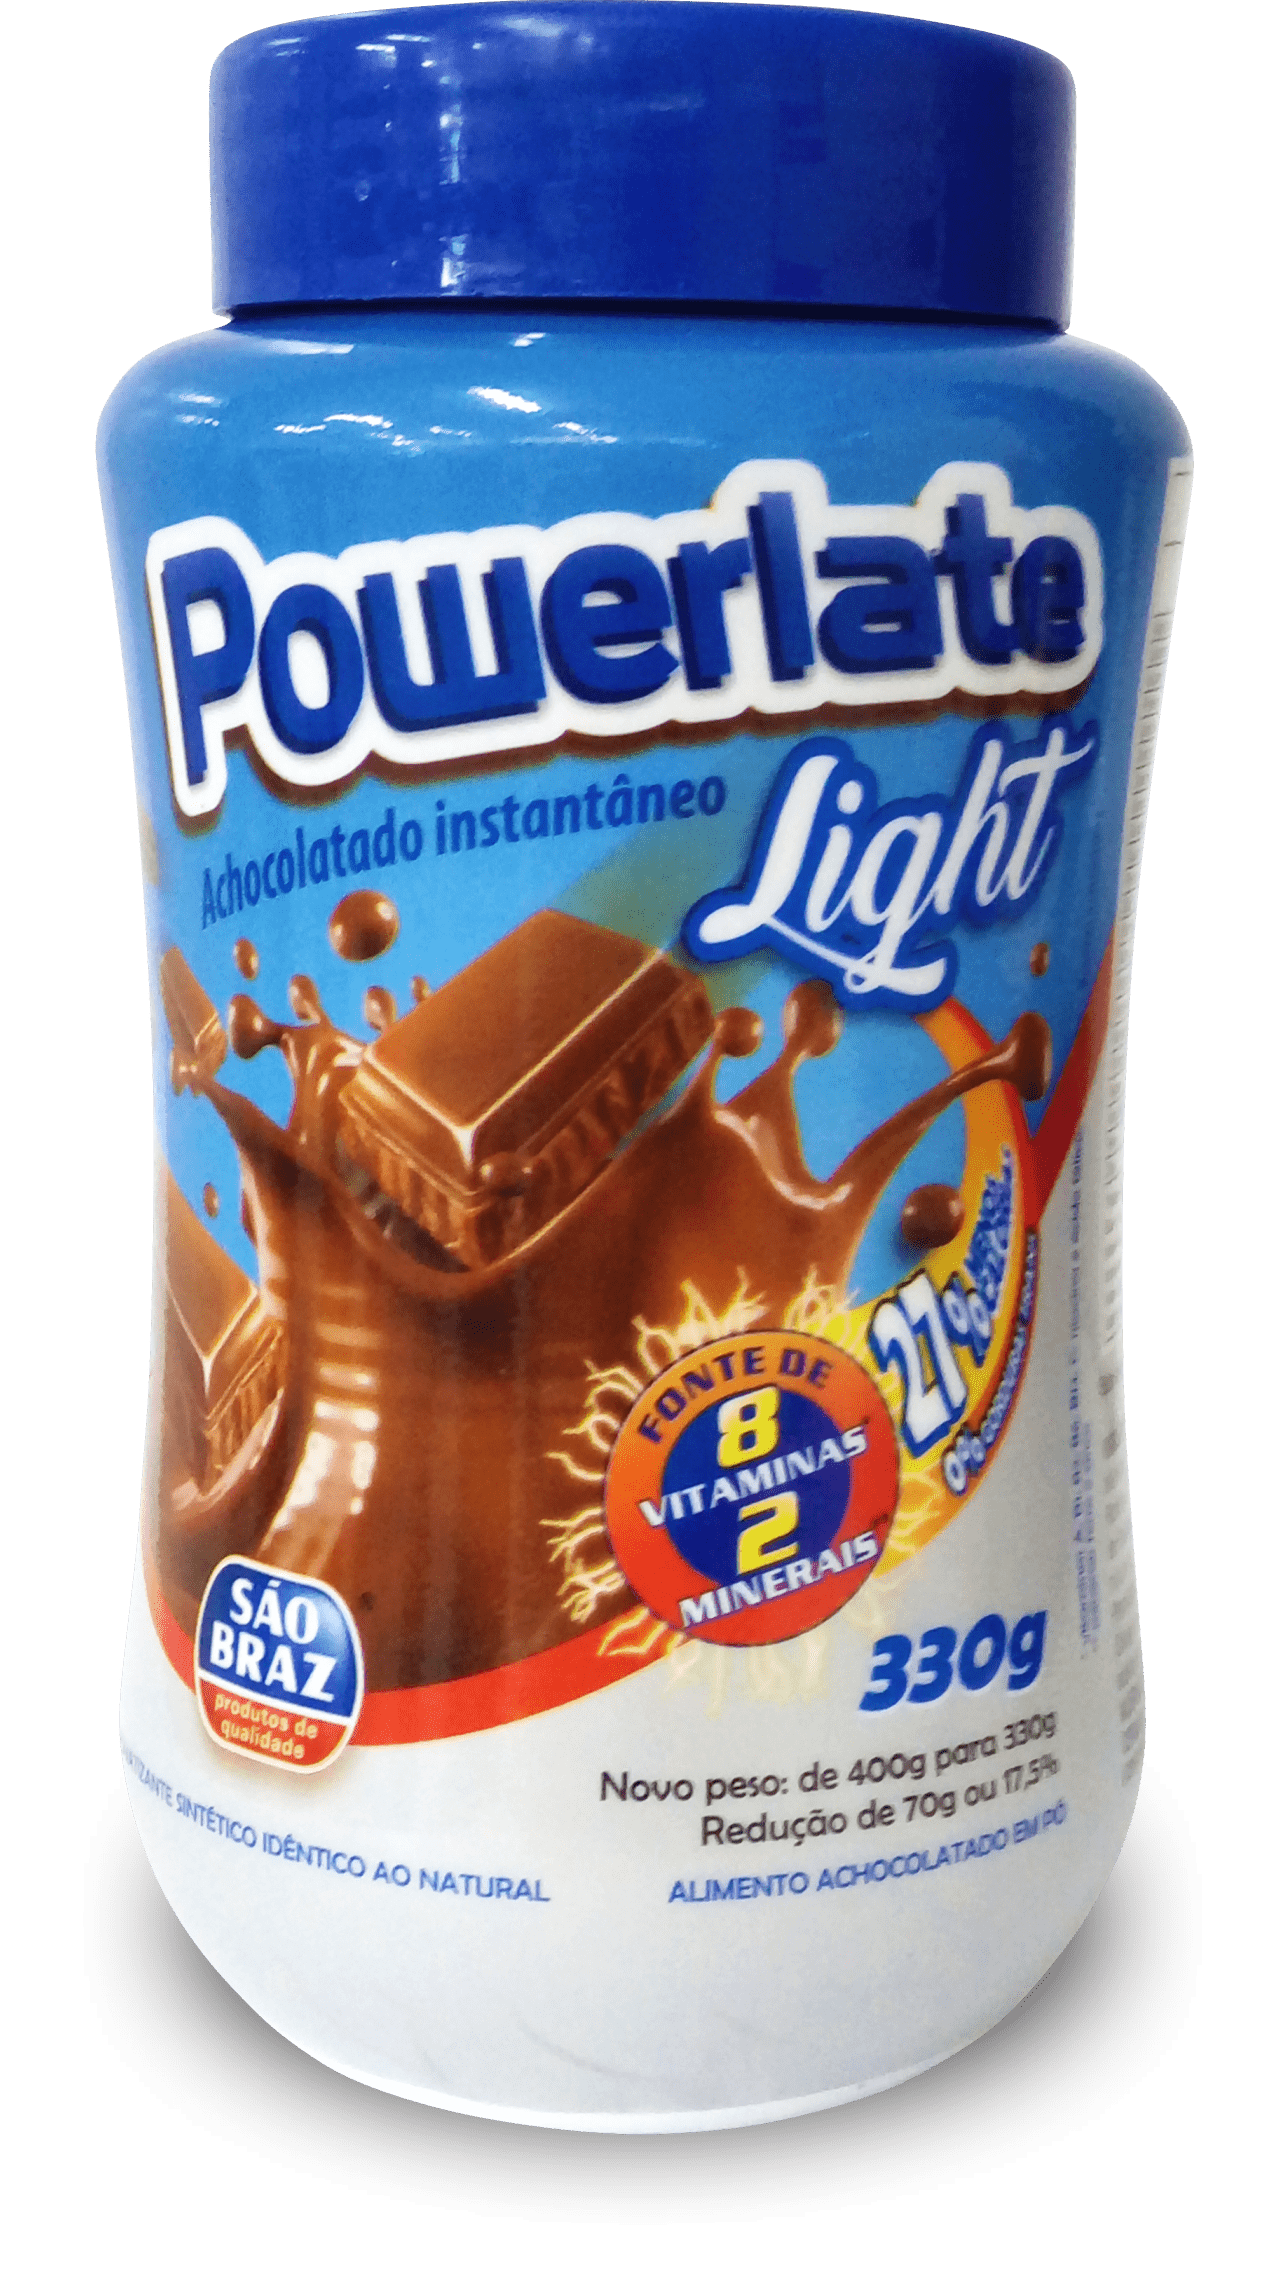 Powerlate Light 400g, Pote Plástico